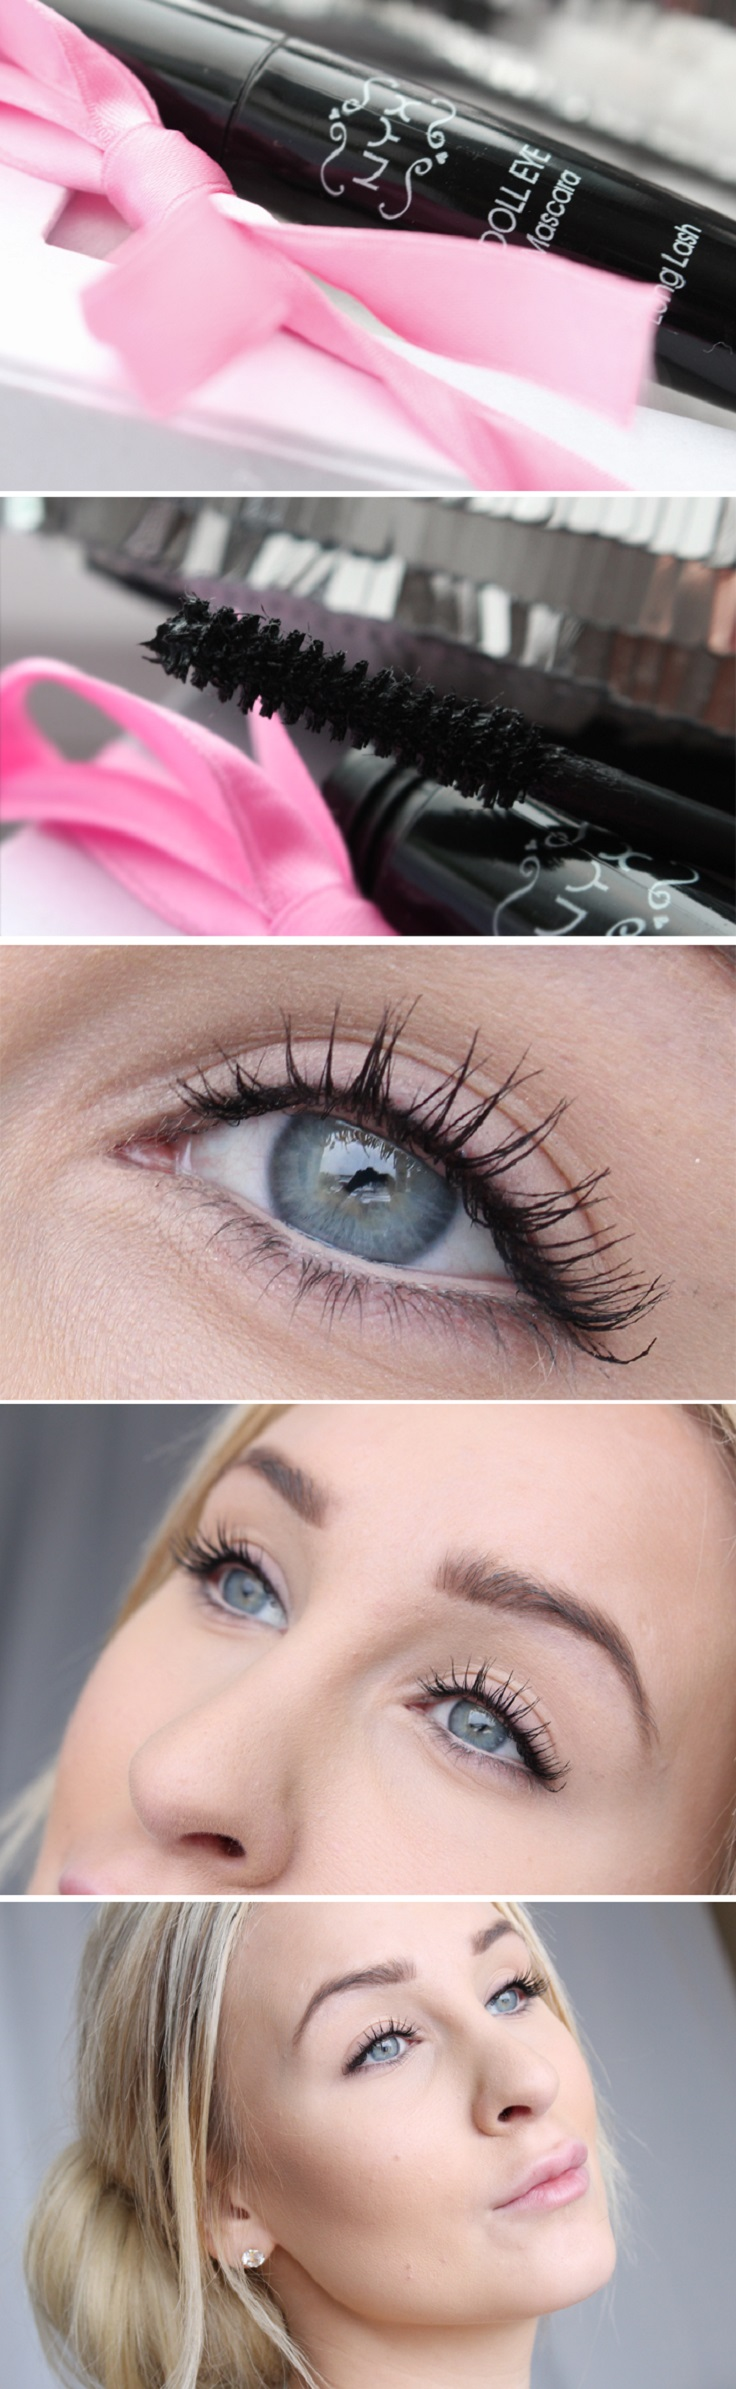 Top 10 Tips On How To Make Your Eyelashes Look Longer - Top Inspired